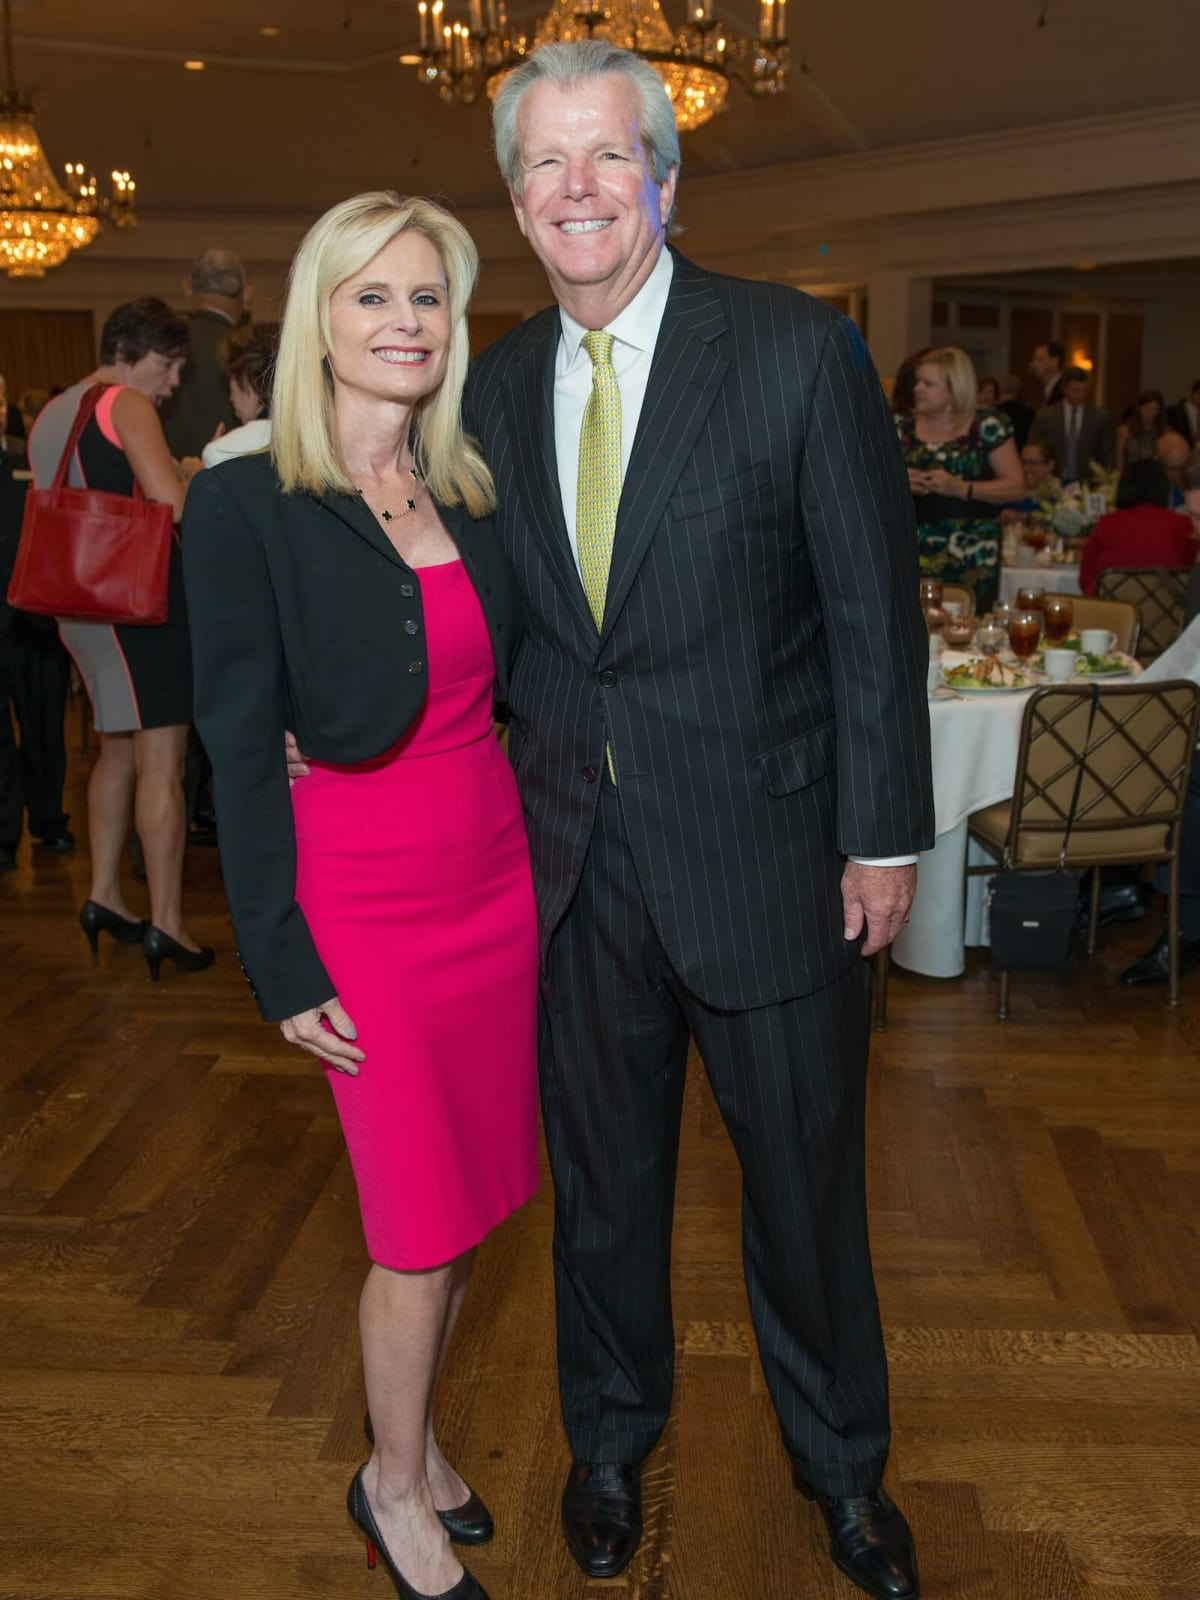 Mission to Mars luncheon 9/16, Jo Lynn Falgout, Gregg Falgout